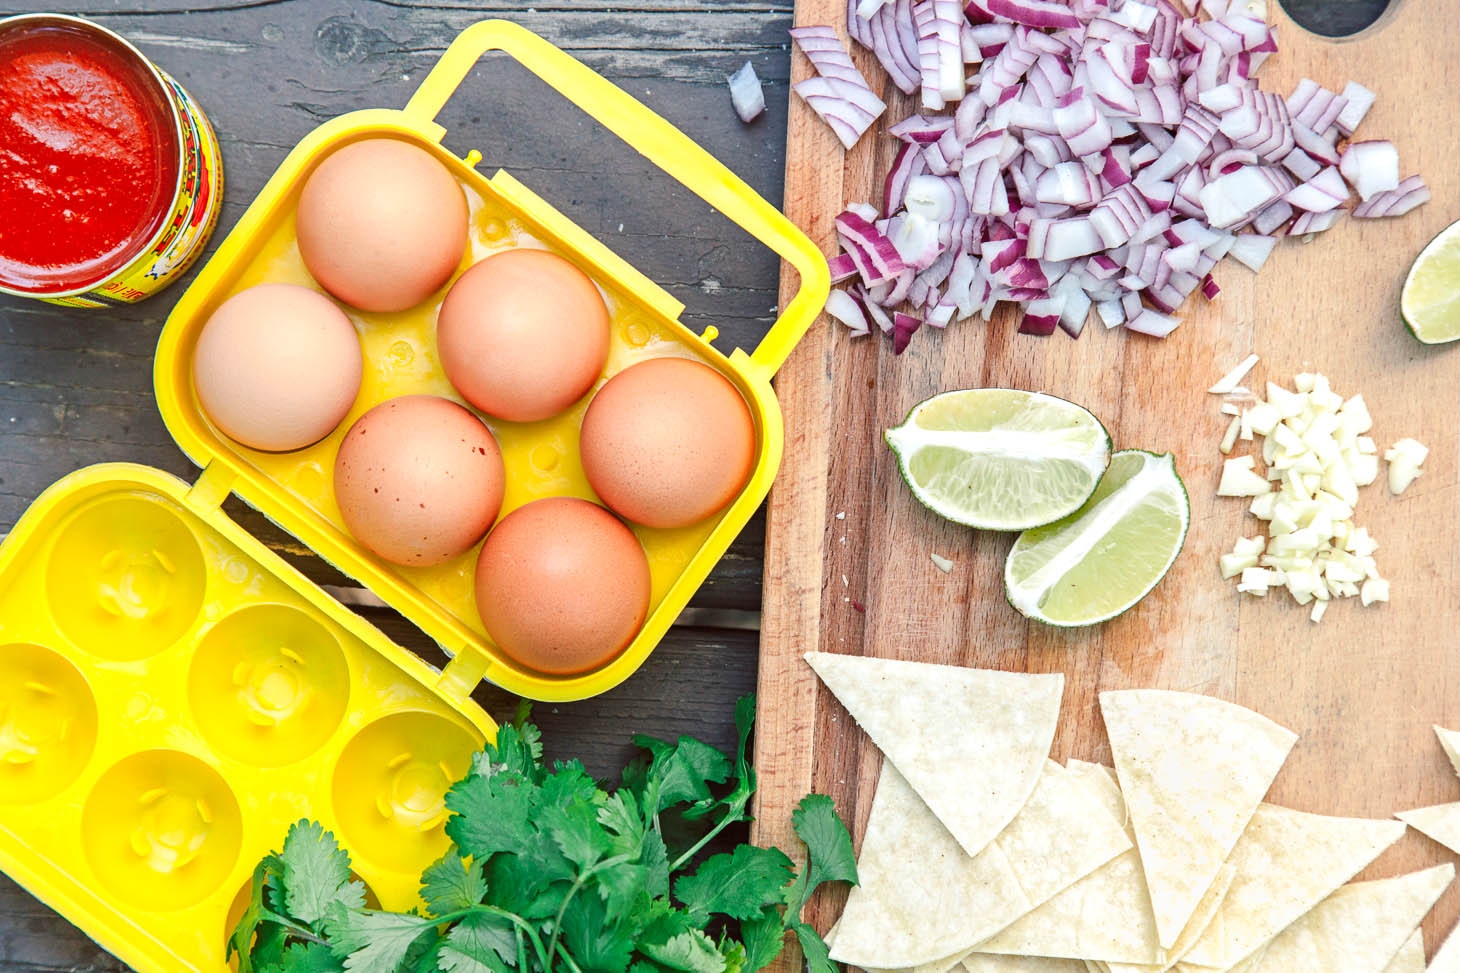 Ingredients for Camping Chilaquiles